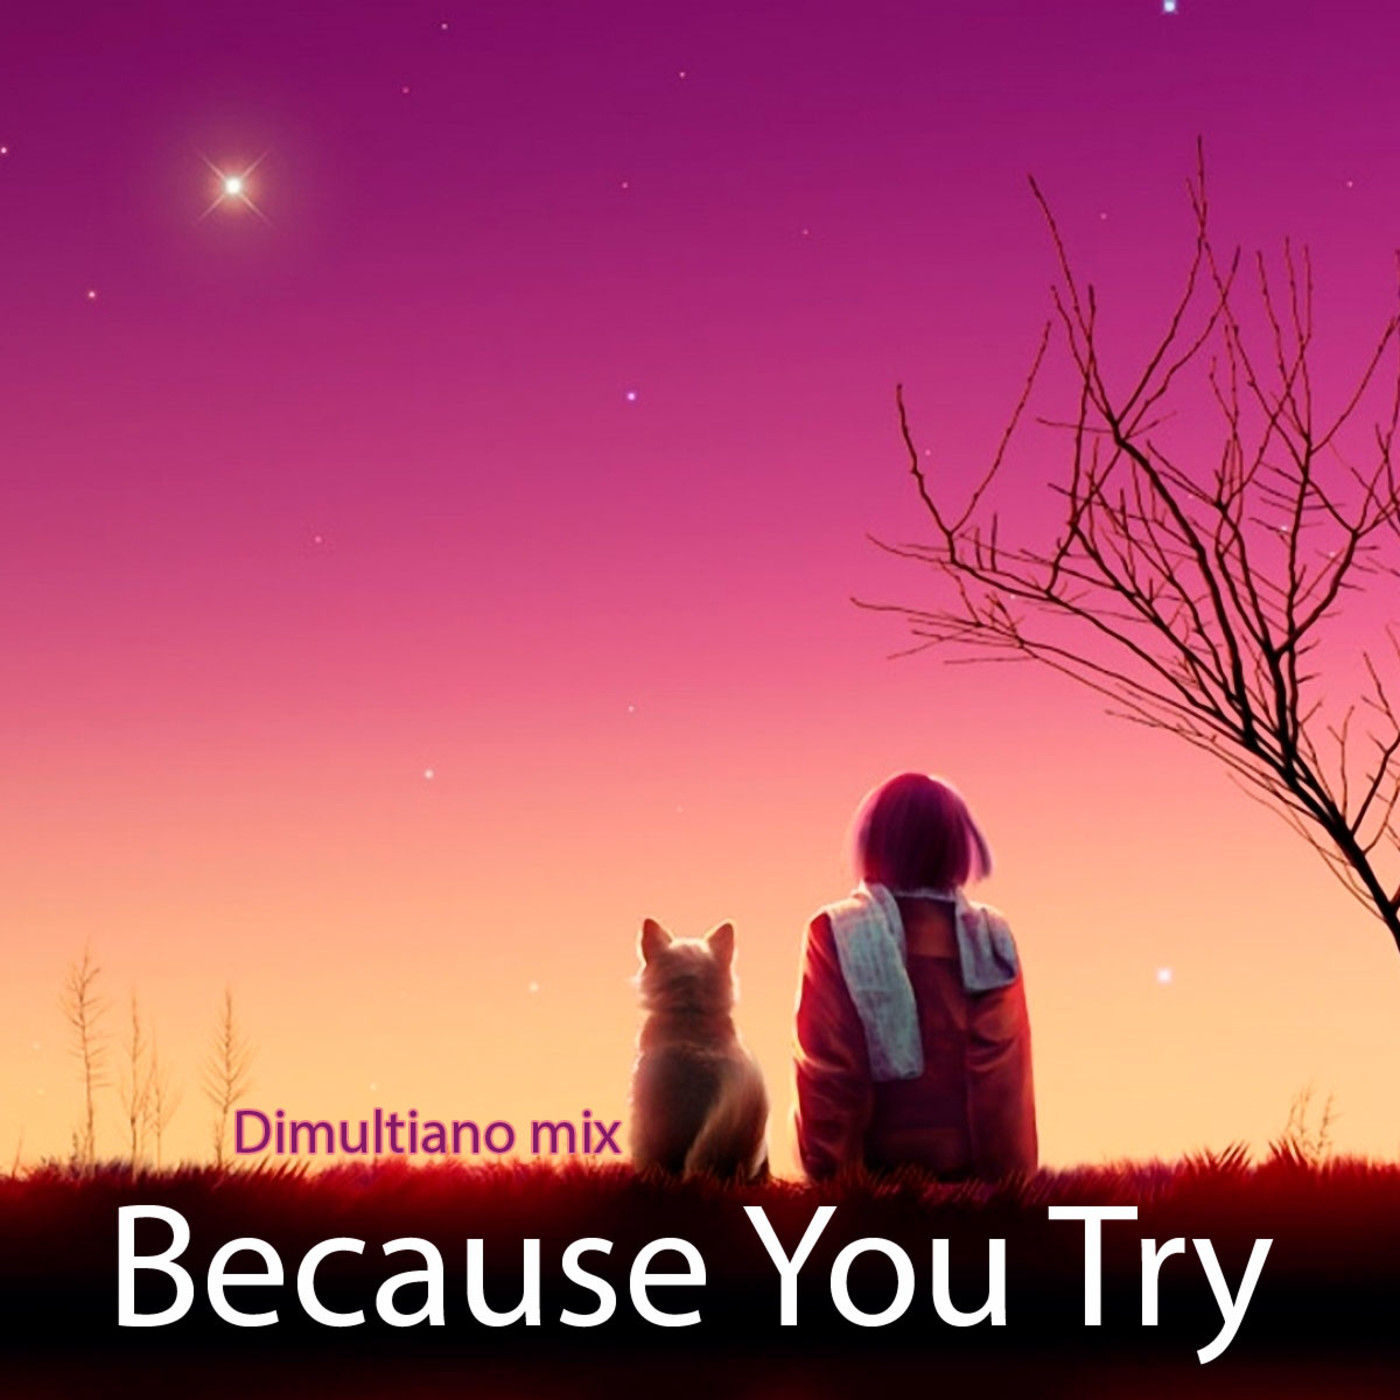 Dimultiano mix - Because you Try